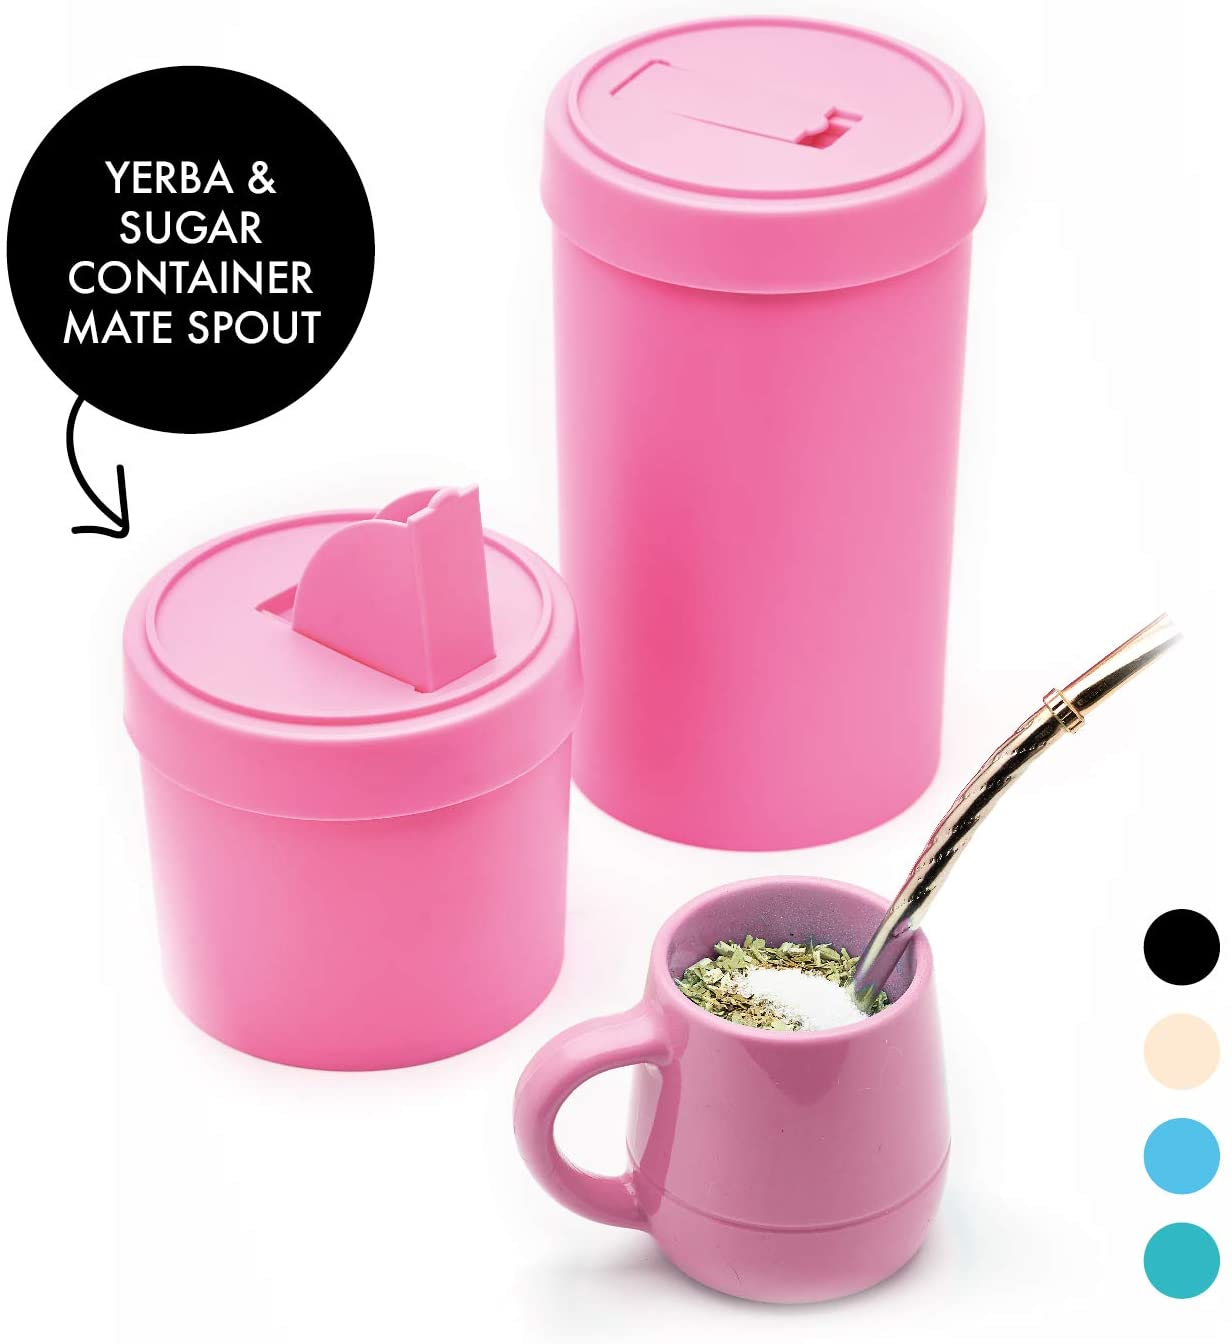 BALIBETOV - New - Modern Yerba Mate Kit - Yerba Mate Container (Yerbero) Sugar Container and Mate Gourd Included - All BPA Free - Designed with a Mate Spout for Easy Serving (Pink)